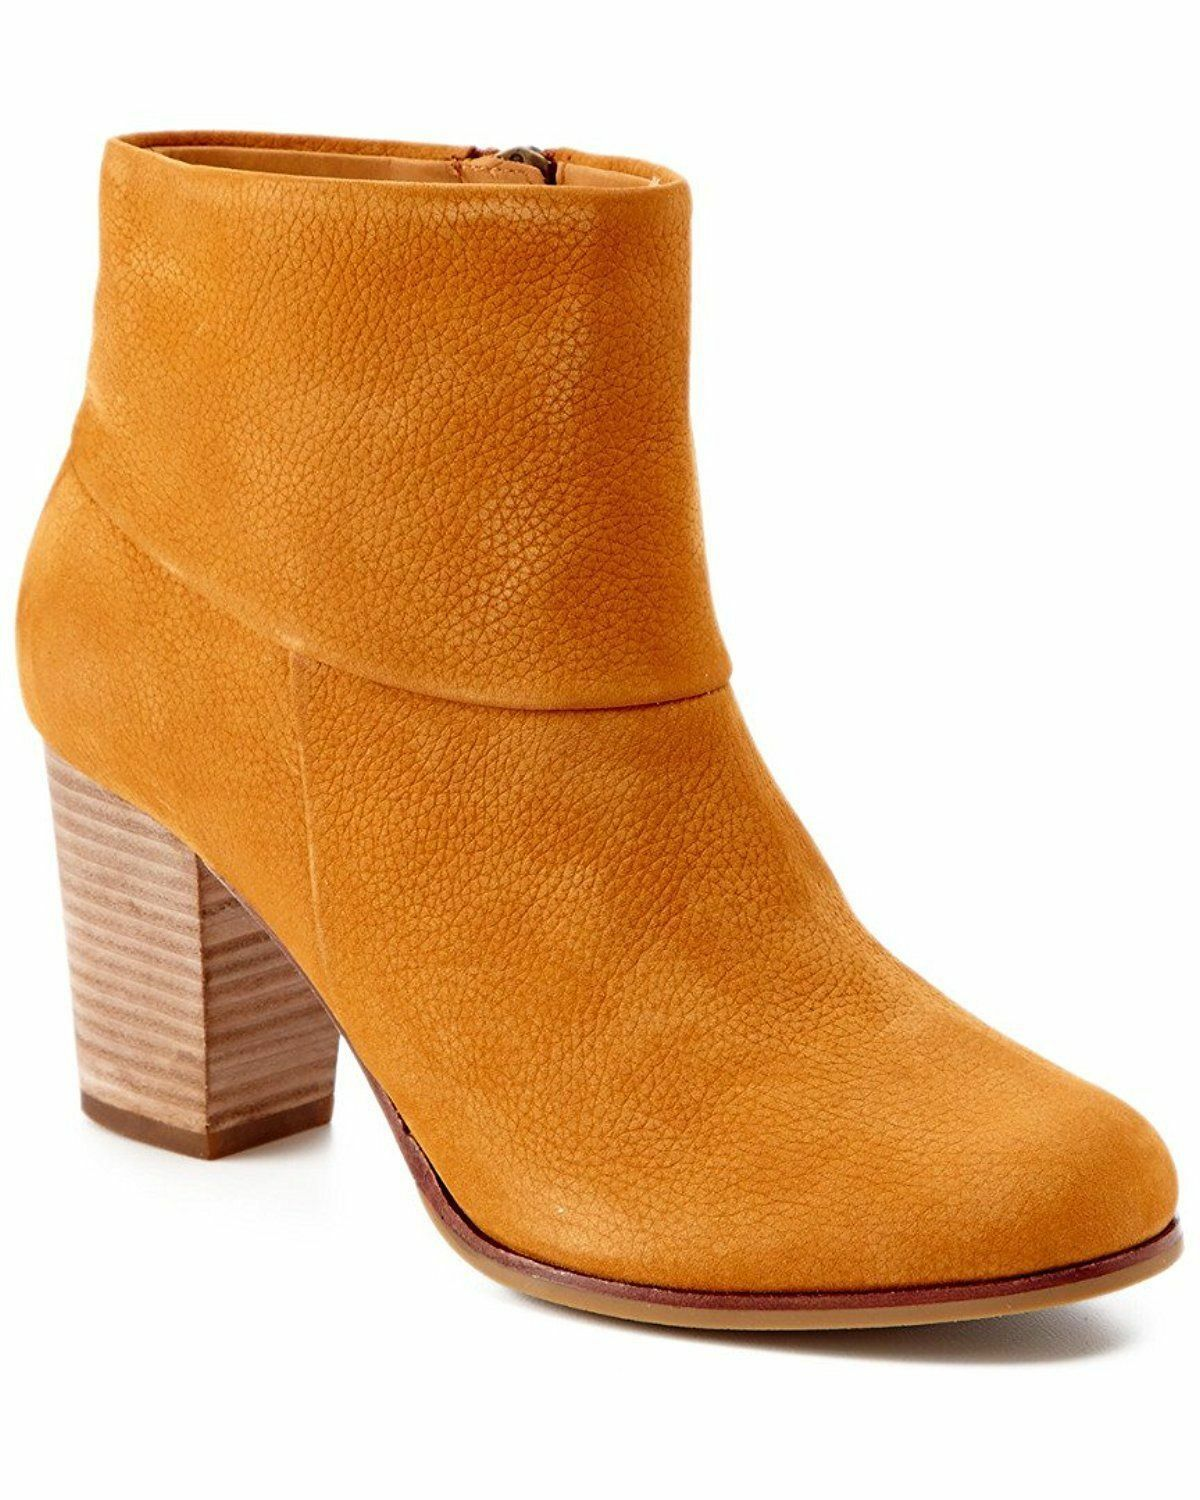 Cole Haan Cassidy Nubuck Camello Zip Ankle Stiefel Damenschuhe Camello Nubuck 10 NEW IN BOX 4dfdce